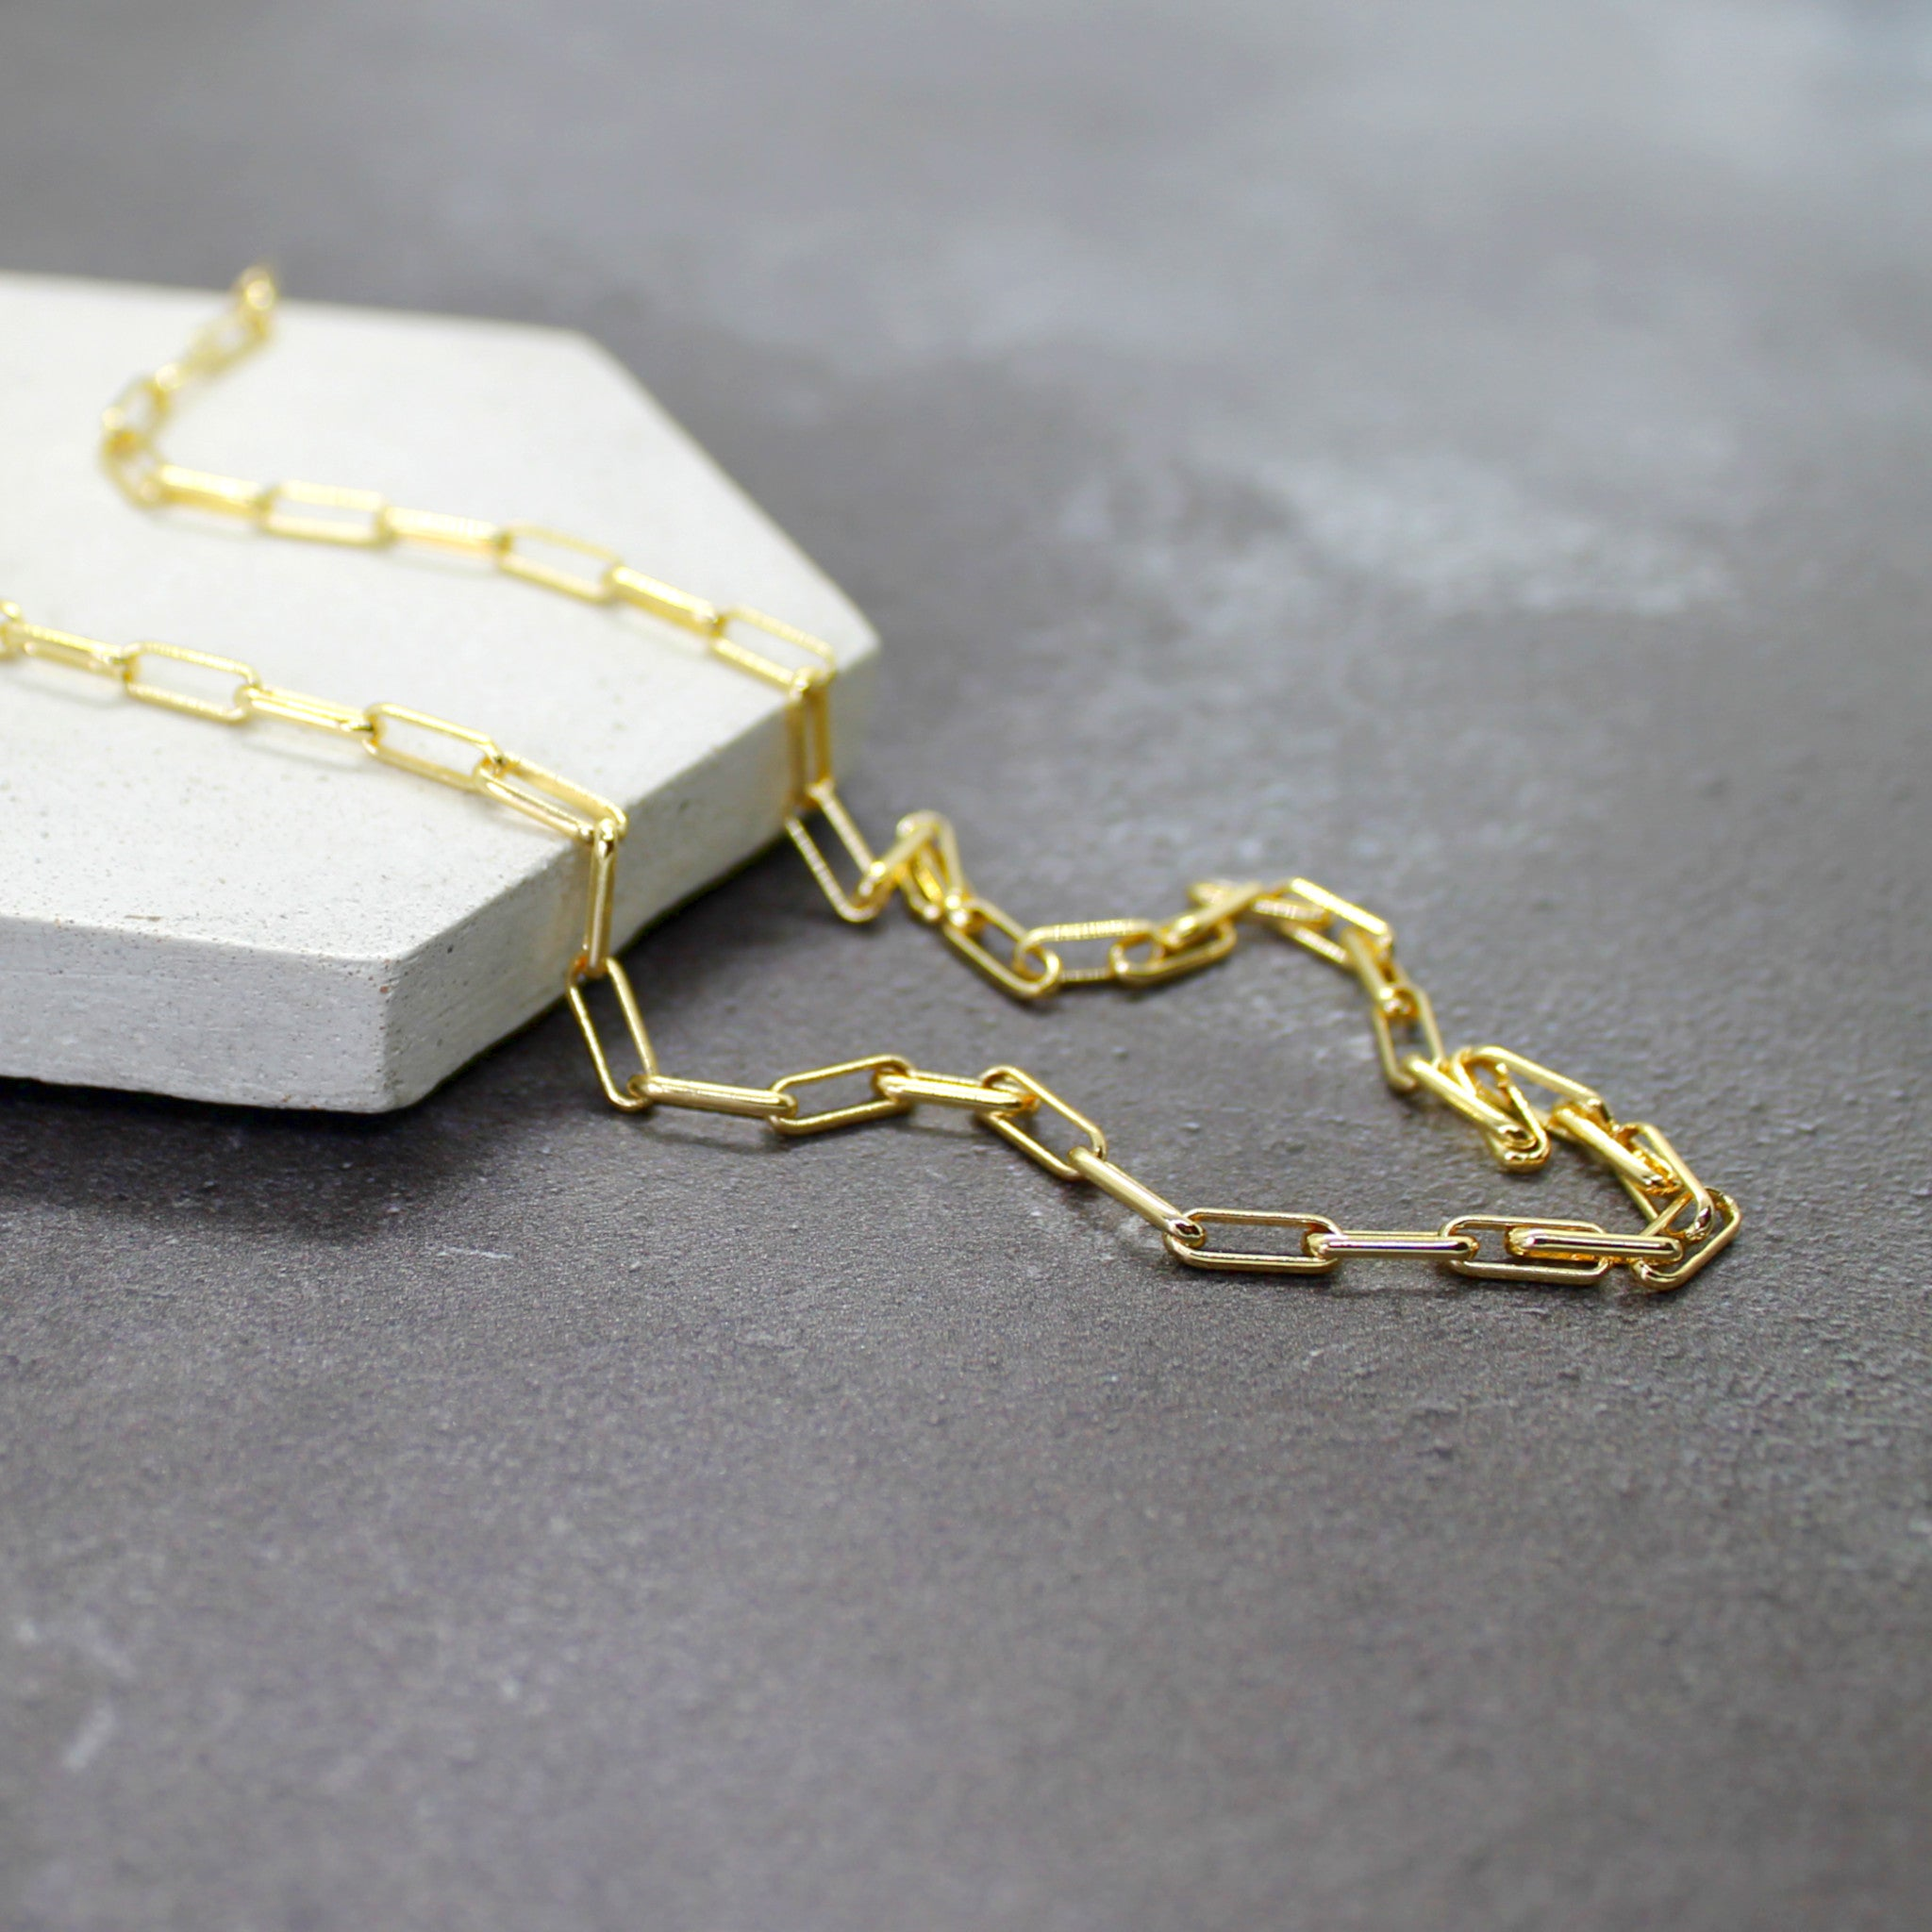 Gold filled paperclip chain - Mara studio